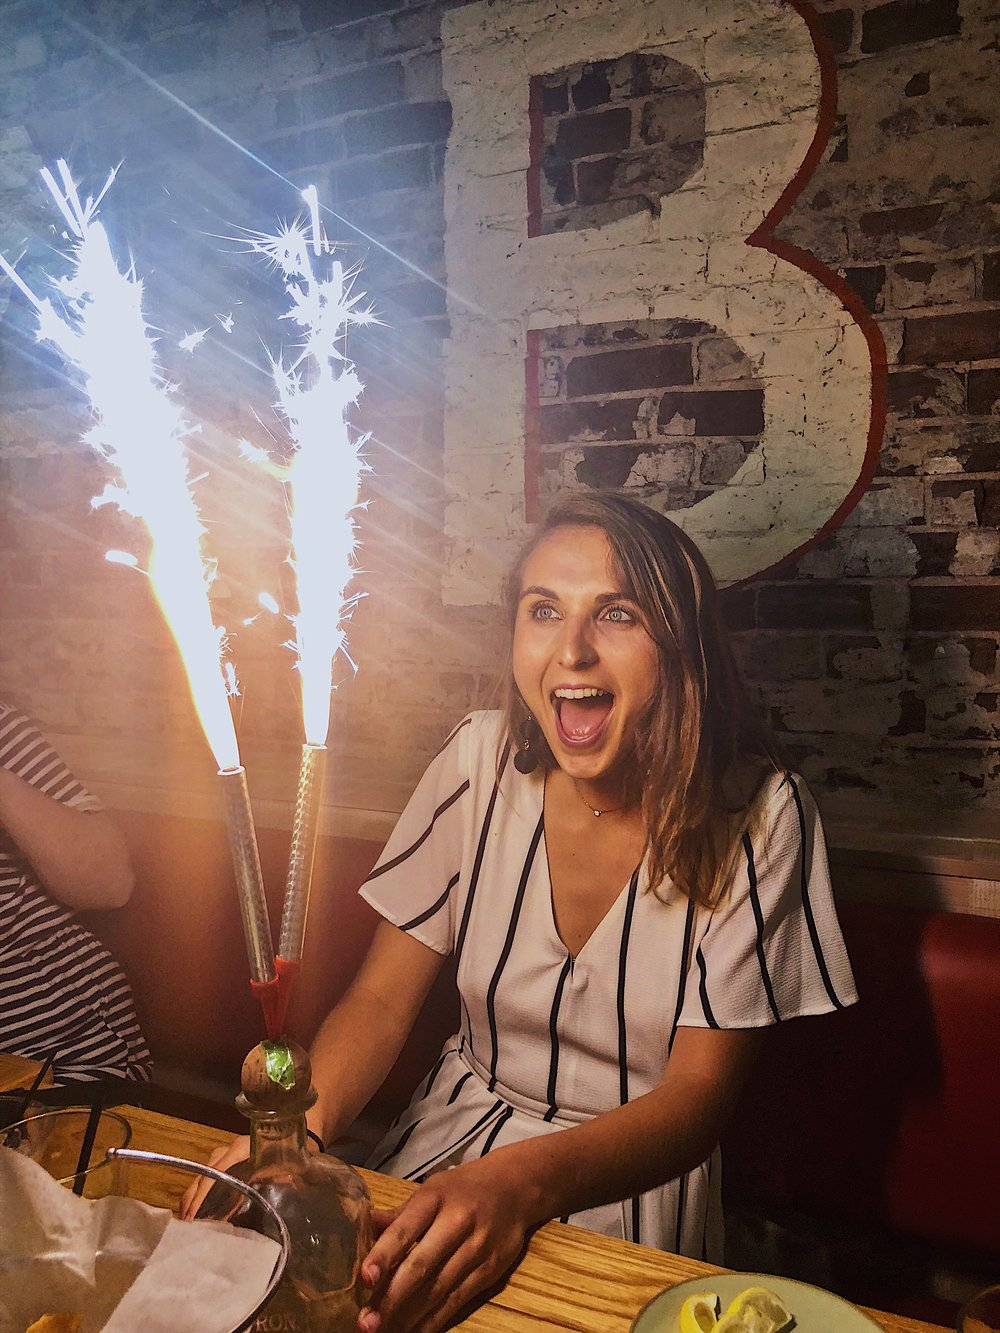 My friends and I went to Babalu's. A supper yummy tex-mex restuarant in downtown Knoxville. They might have the most epic birthday surprise ever for their guests. A patron bottle with massive sparklers blasting out of it. Go if you're in the area! And you too will have this face.